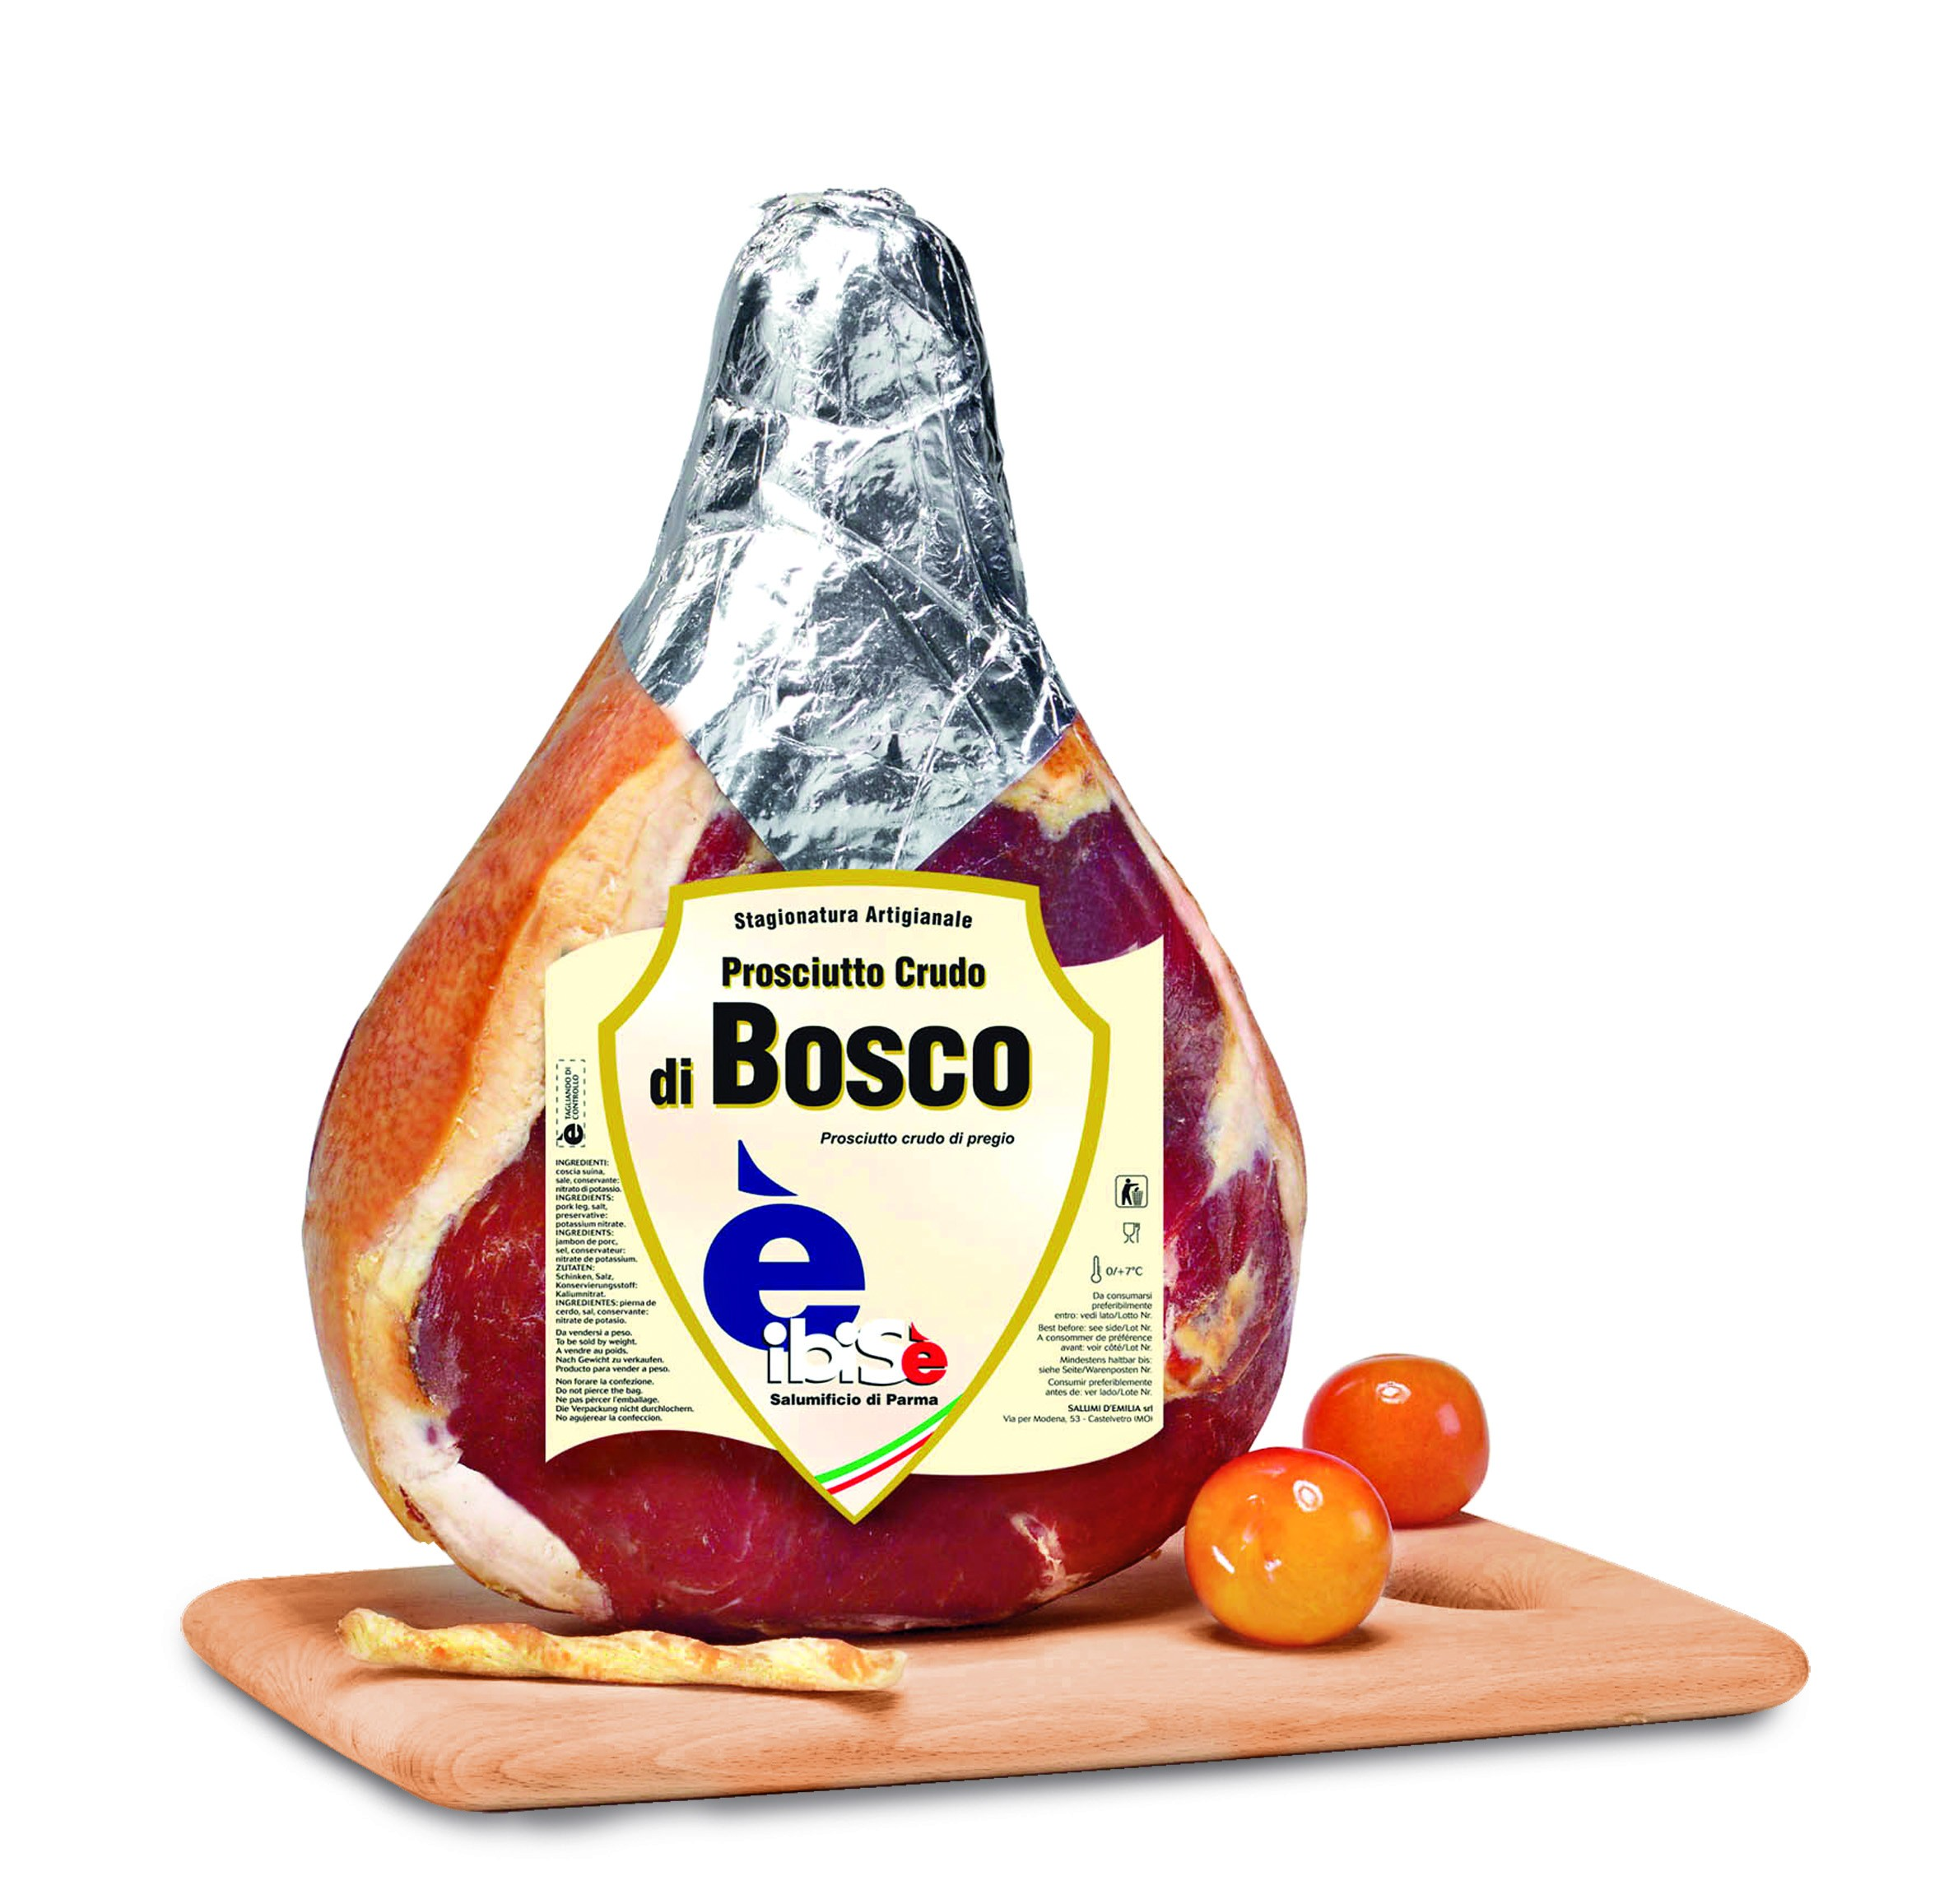 G B as well Pistume Tastasal in addition 778 Mottolini Speck Valtellina 22kg likewise Confezione Regalo Triangolare 0 9 Kg additionally Antipastiplatter. on coppa cold cuts